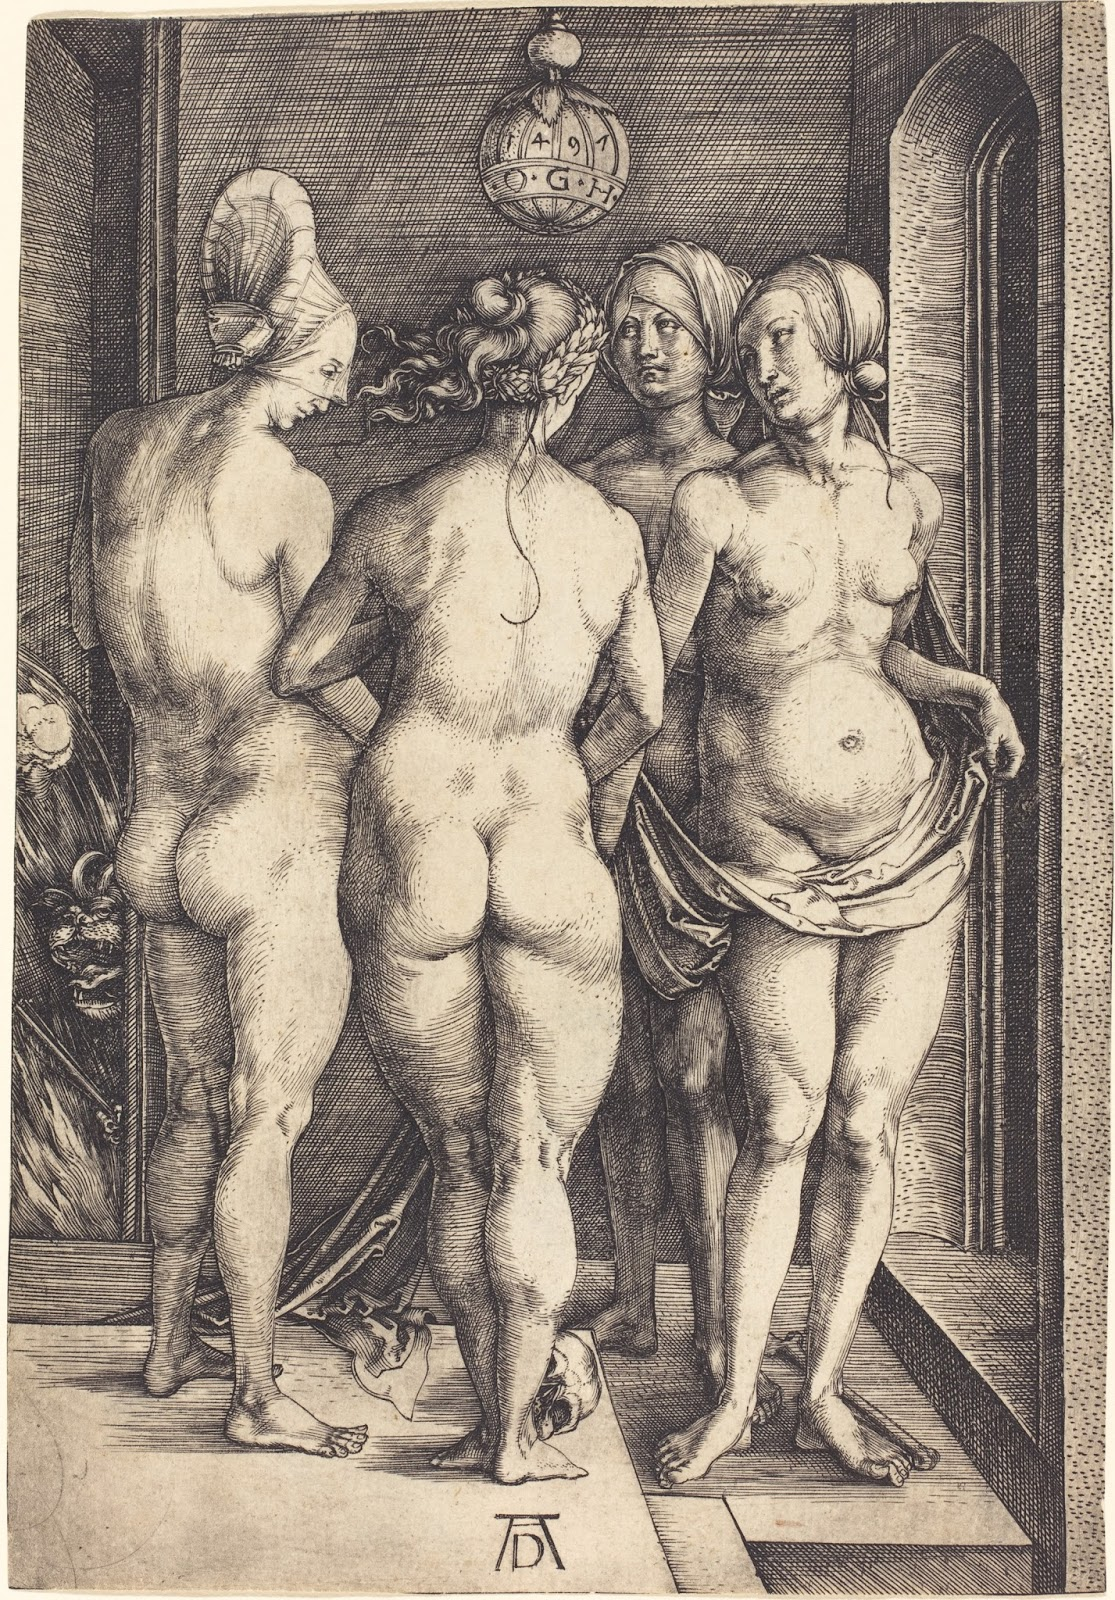 Since they were woodcuts, they were sort of the first mass production of art  to be made.